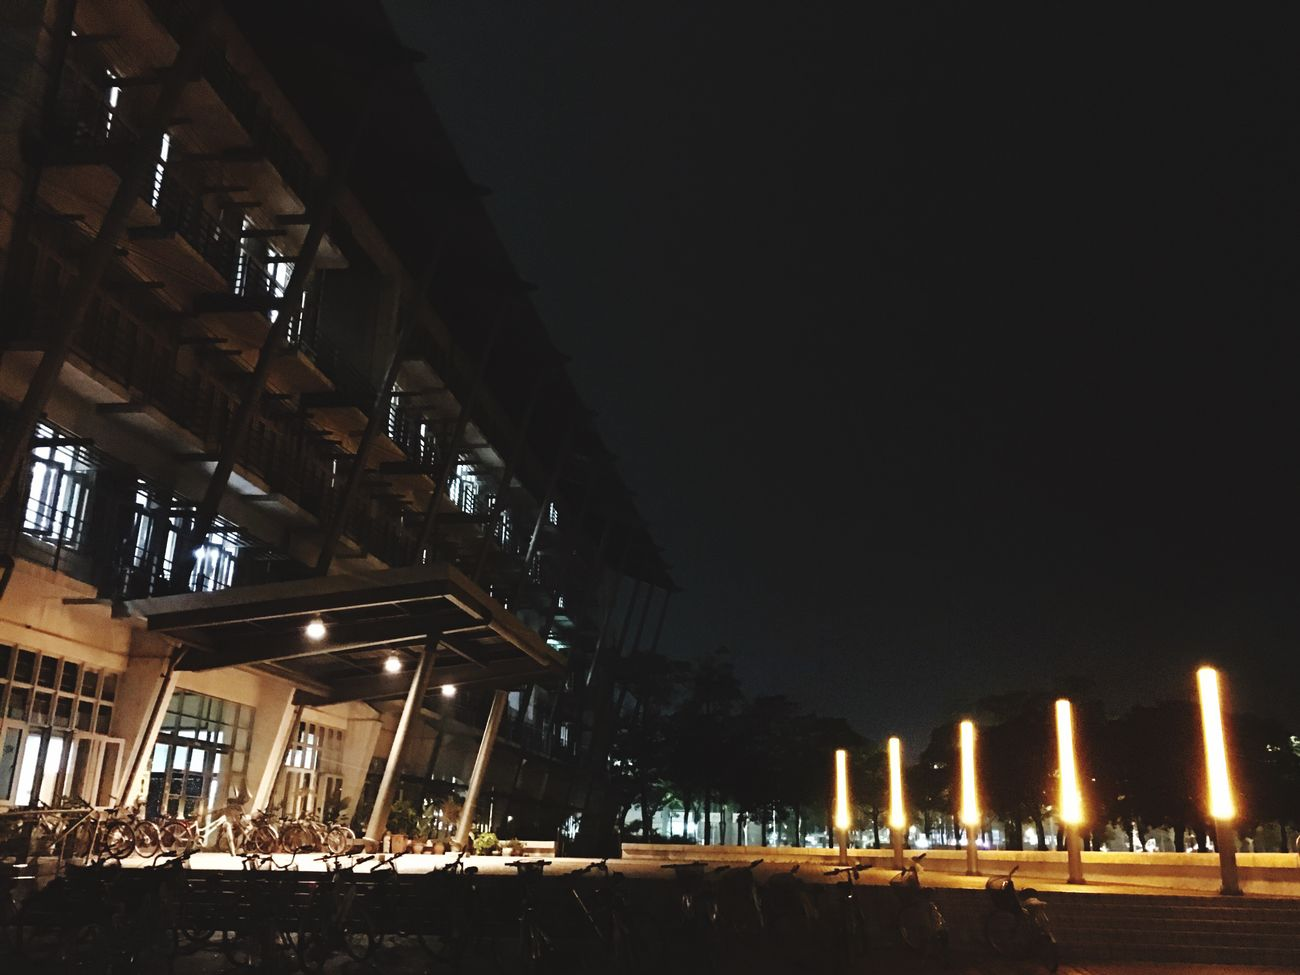 Night Architecture Built Structure Building Exterior Outdoors Illuminated Architecture_collection Taiwan Architecturelovers Modern University Campus Campus Life MyUniversity Design Architecture Architecture And Art Window